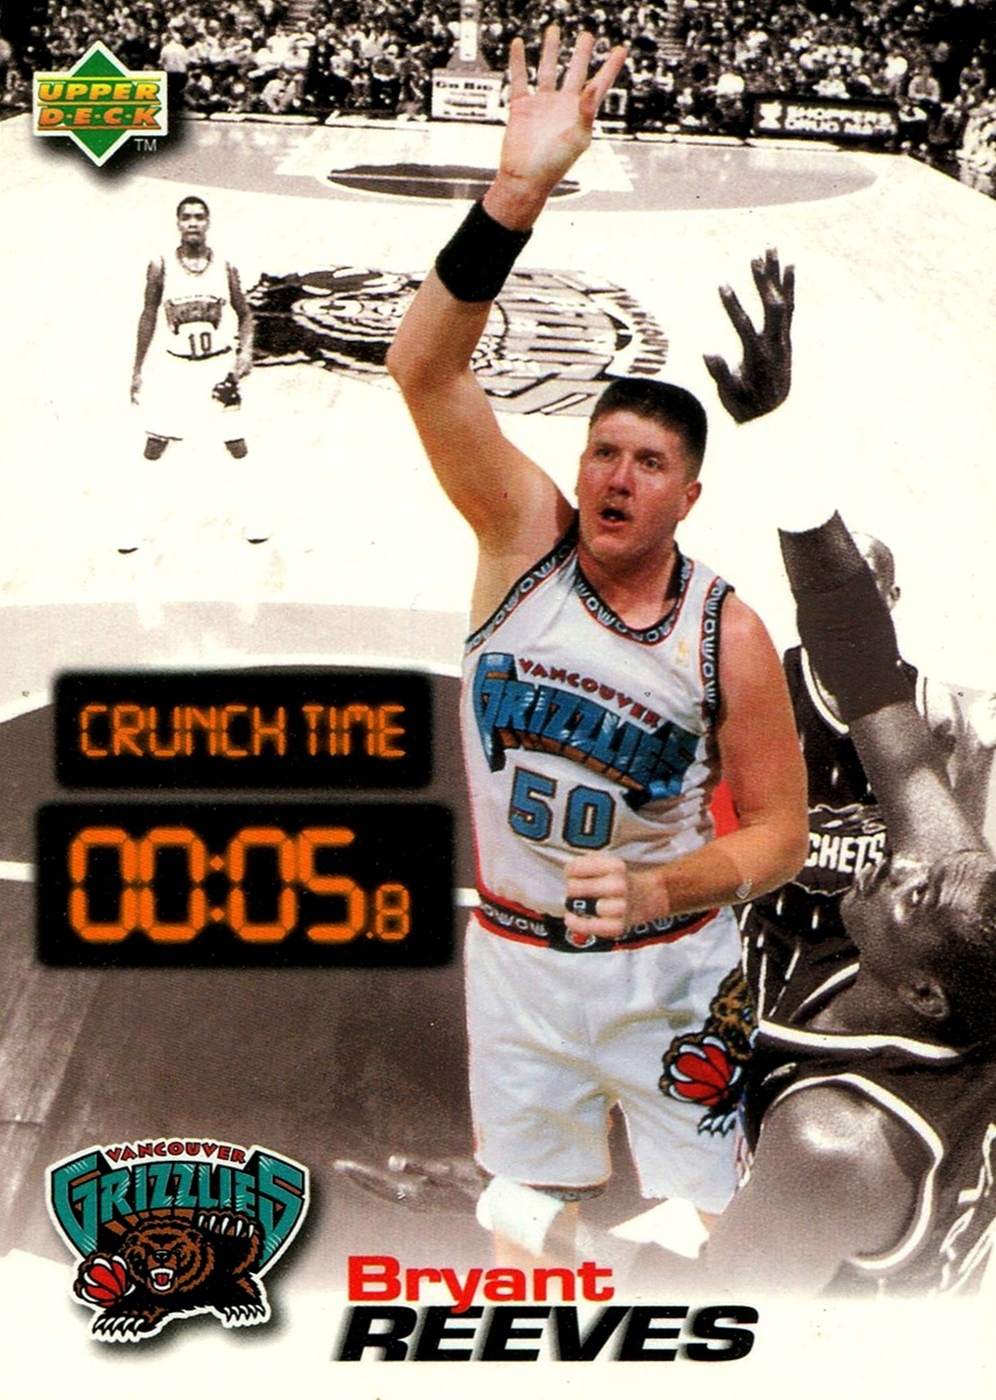 1997 Crunch Time #CT09 (1)